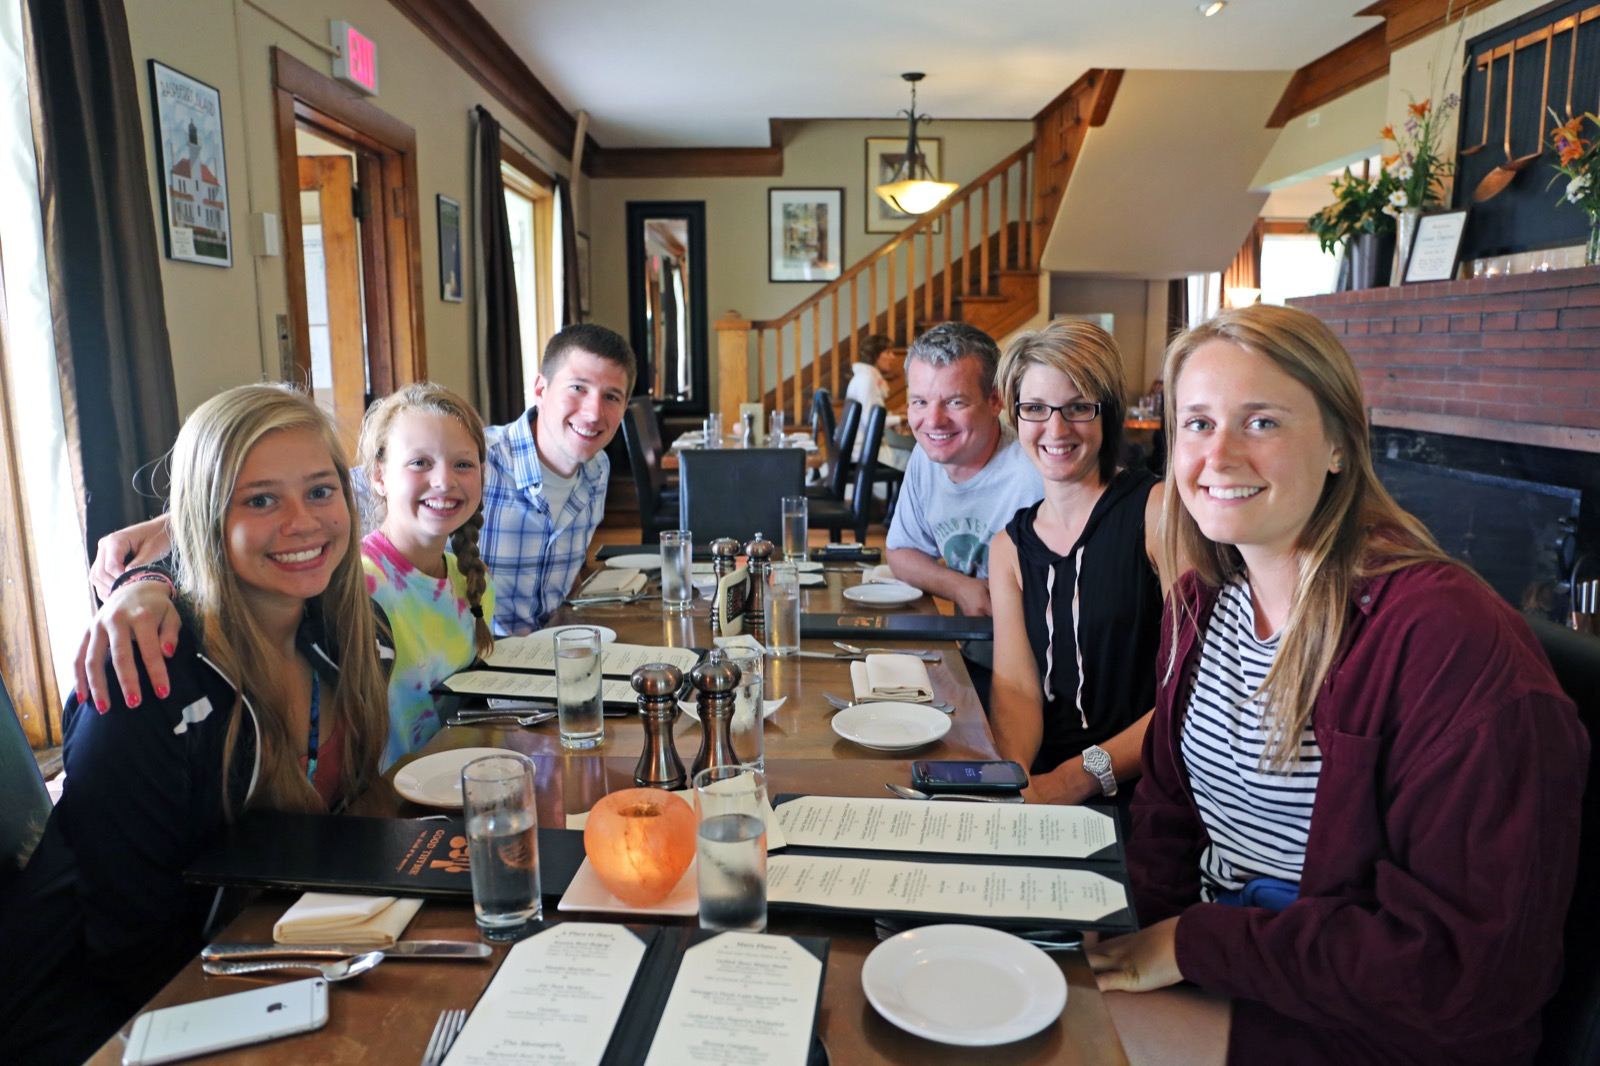 Family eats dinner at Good Thyme restaurant in Bayfield, Wisconsin.